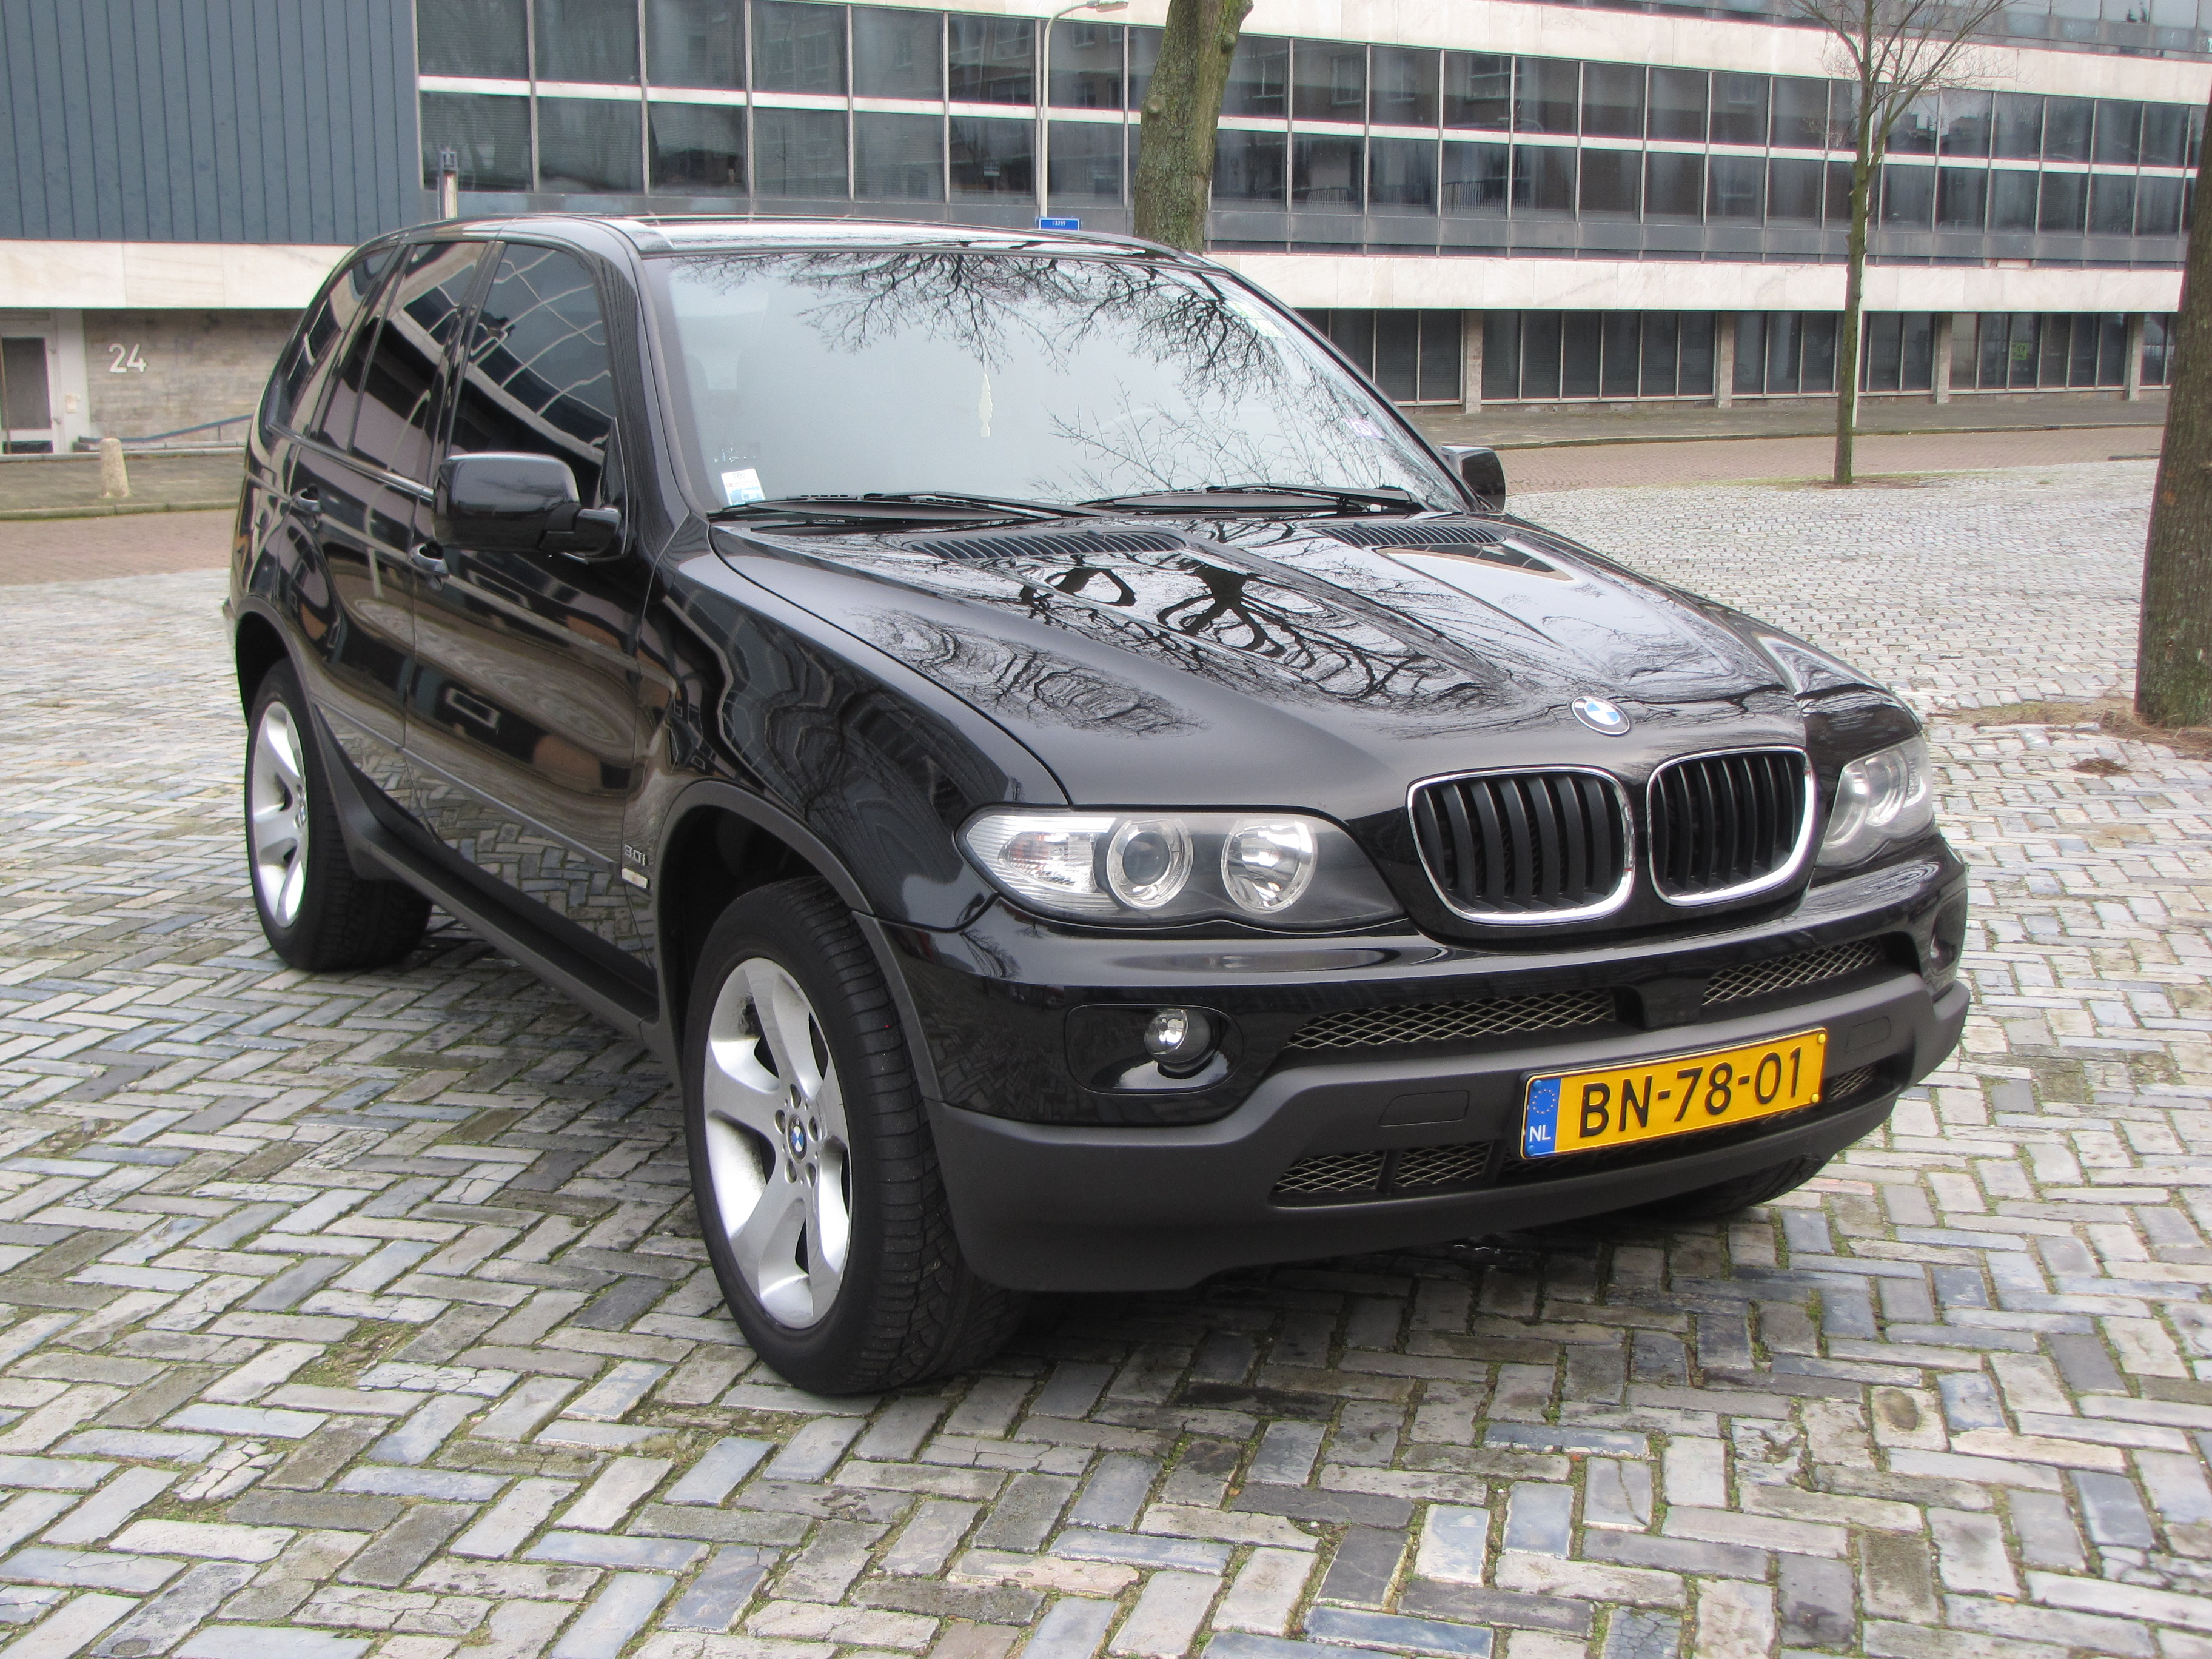 bn bmw x5 4wd end 2004 190k km black friday s deal 7 500 expatcars24. Black Bedroom Furniture Sets. Home Design Ideas